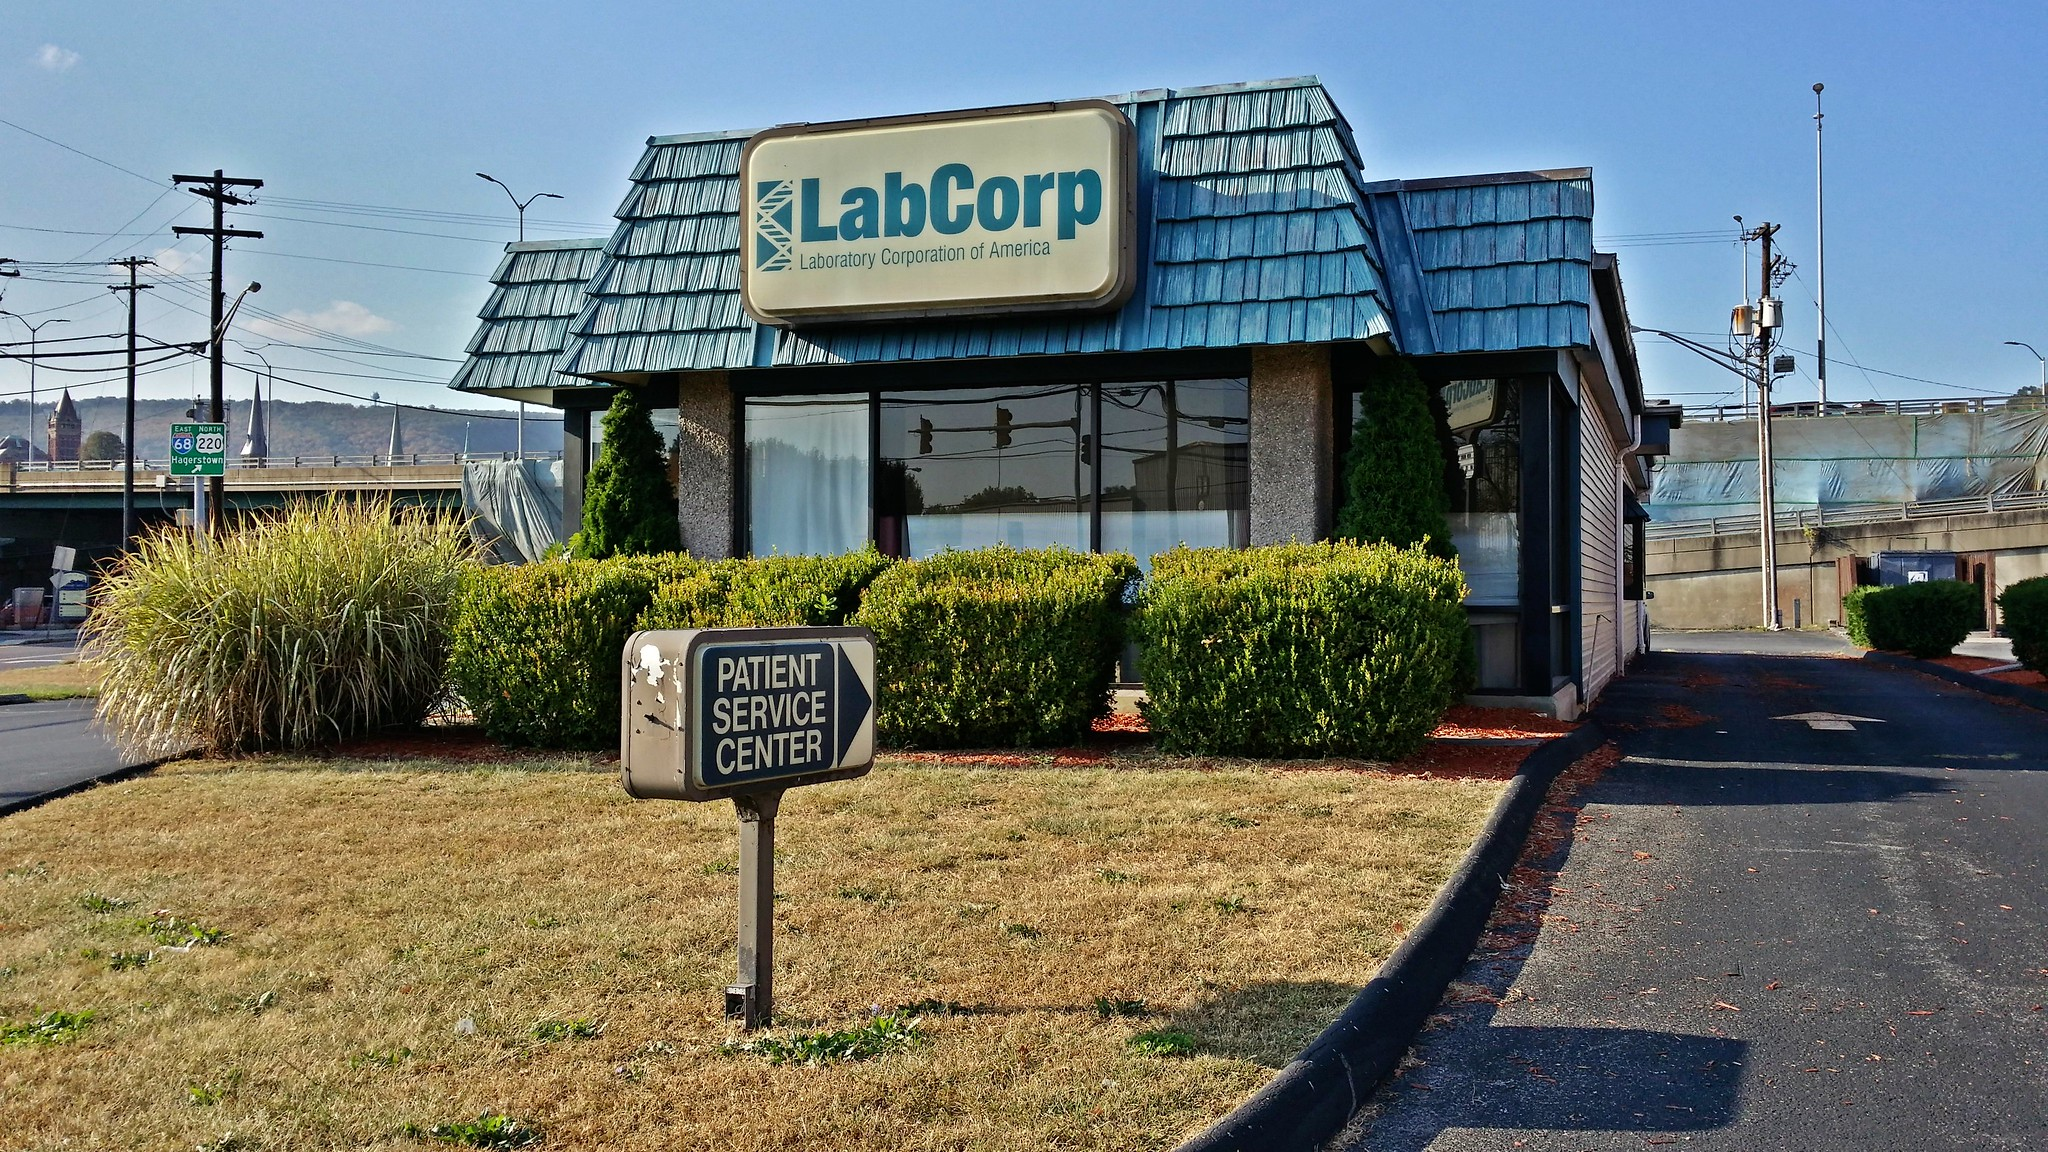 Labcorp in former Dunkin Donuts | Flickr - Photo Sharing!